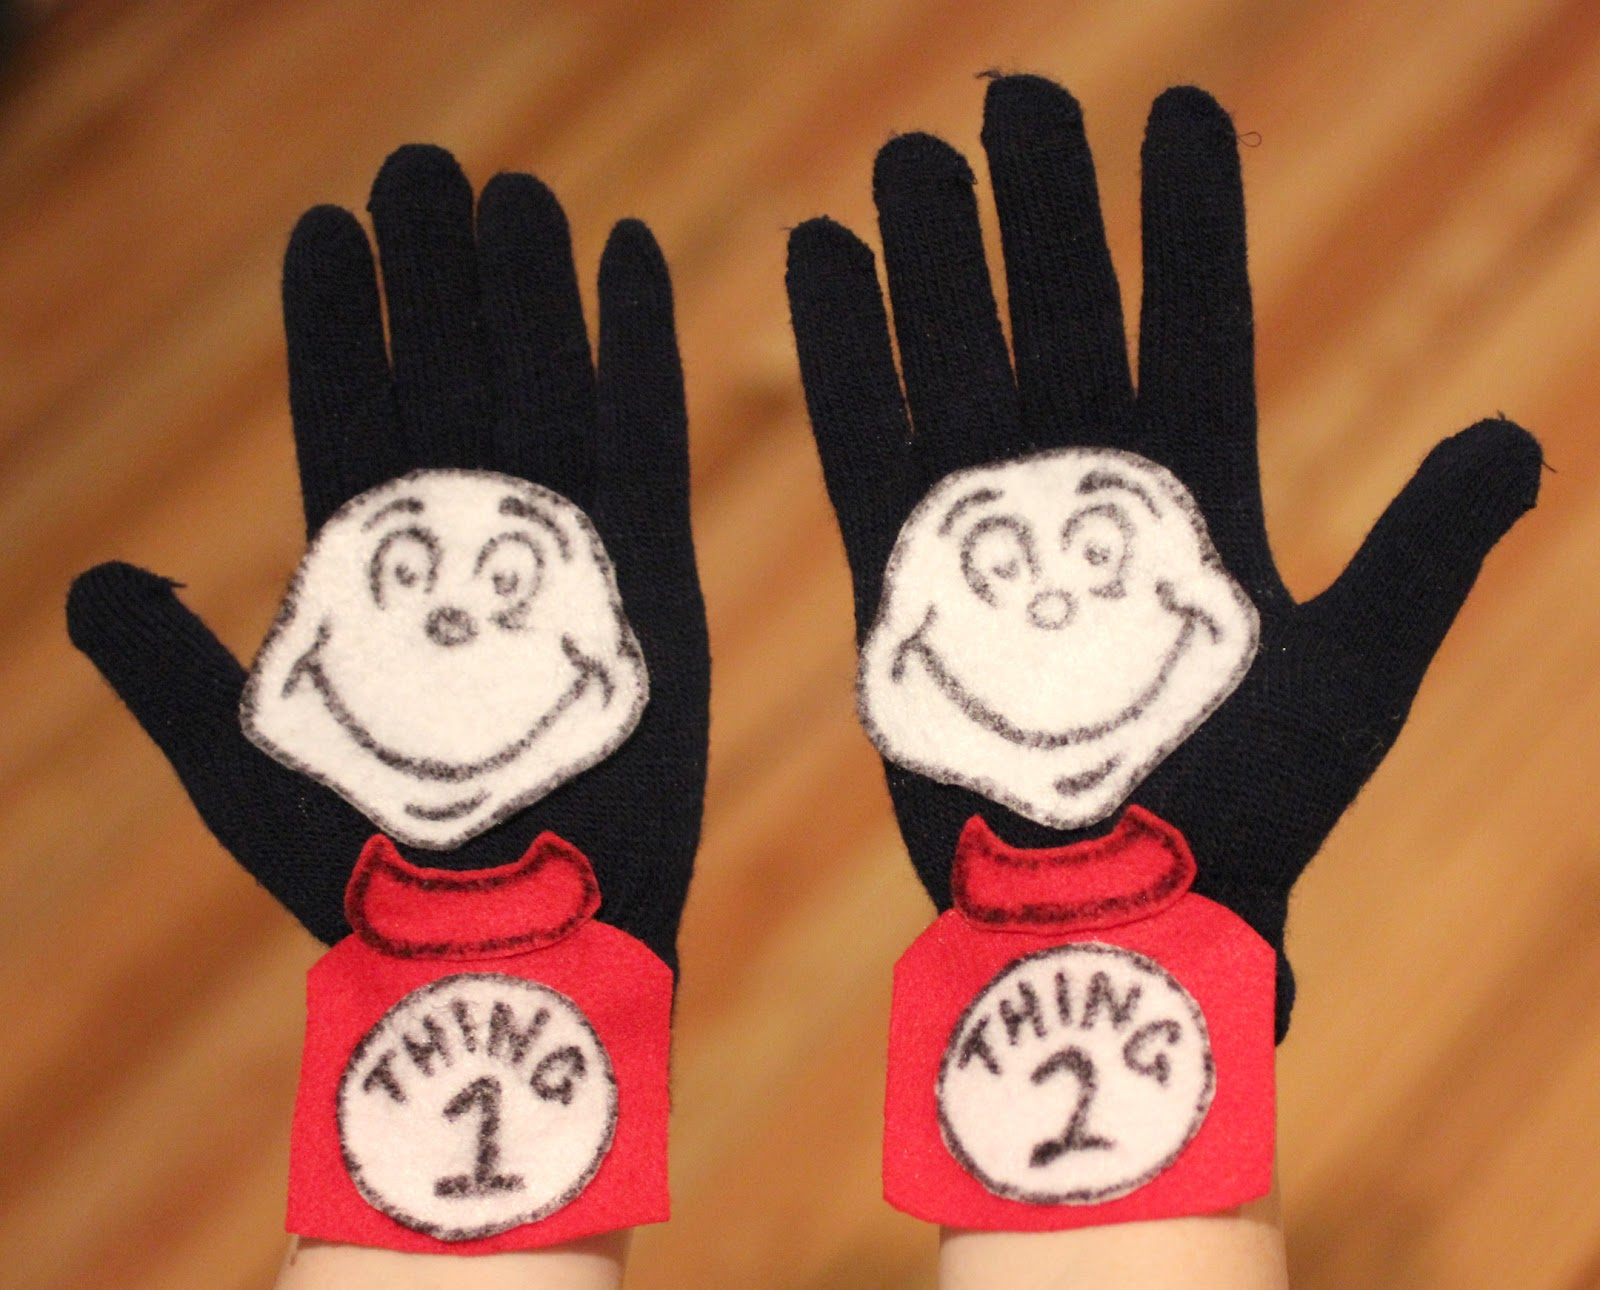 Repeat crafter me thing 1 and thing 2 glove puppets